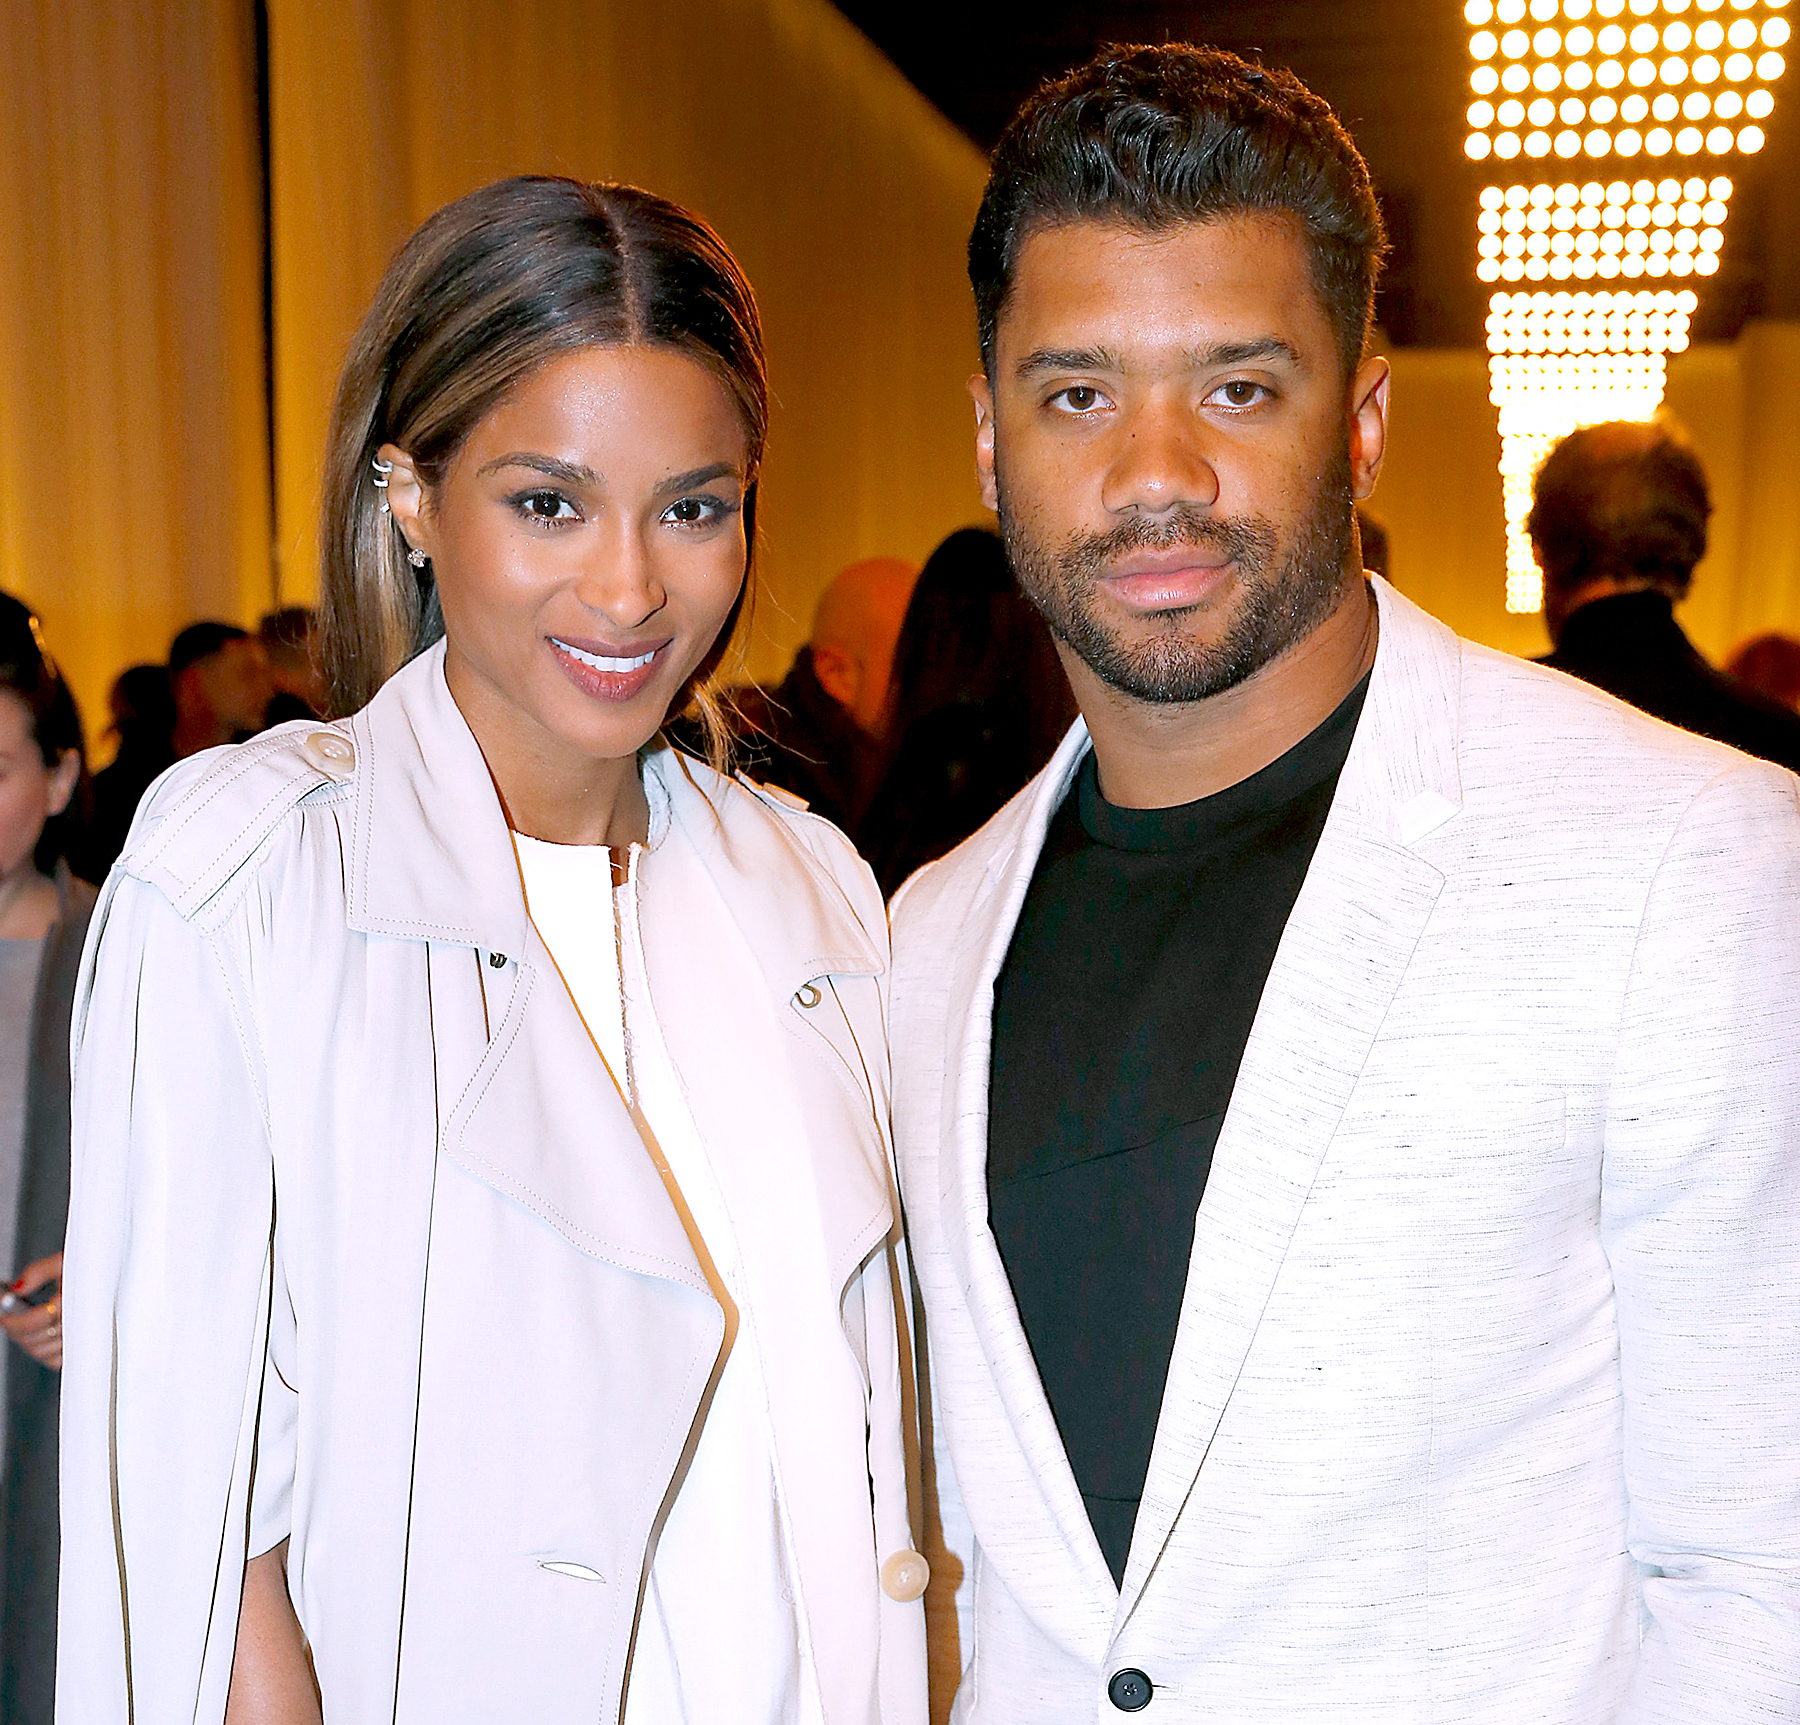 Ciara and Quaterback of Seattle Seahawks Russell Wilson attend the Lanvin show as part of the Paris Fashion Week Womenswear Fall/Winter 2016/2017 on March 3, 2016 in Paris, France.